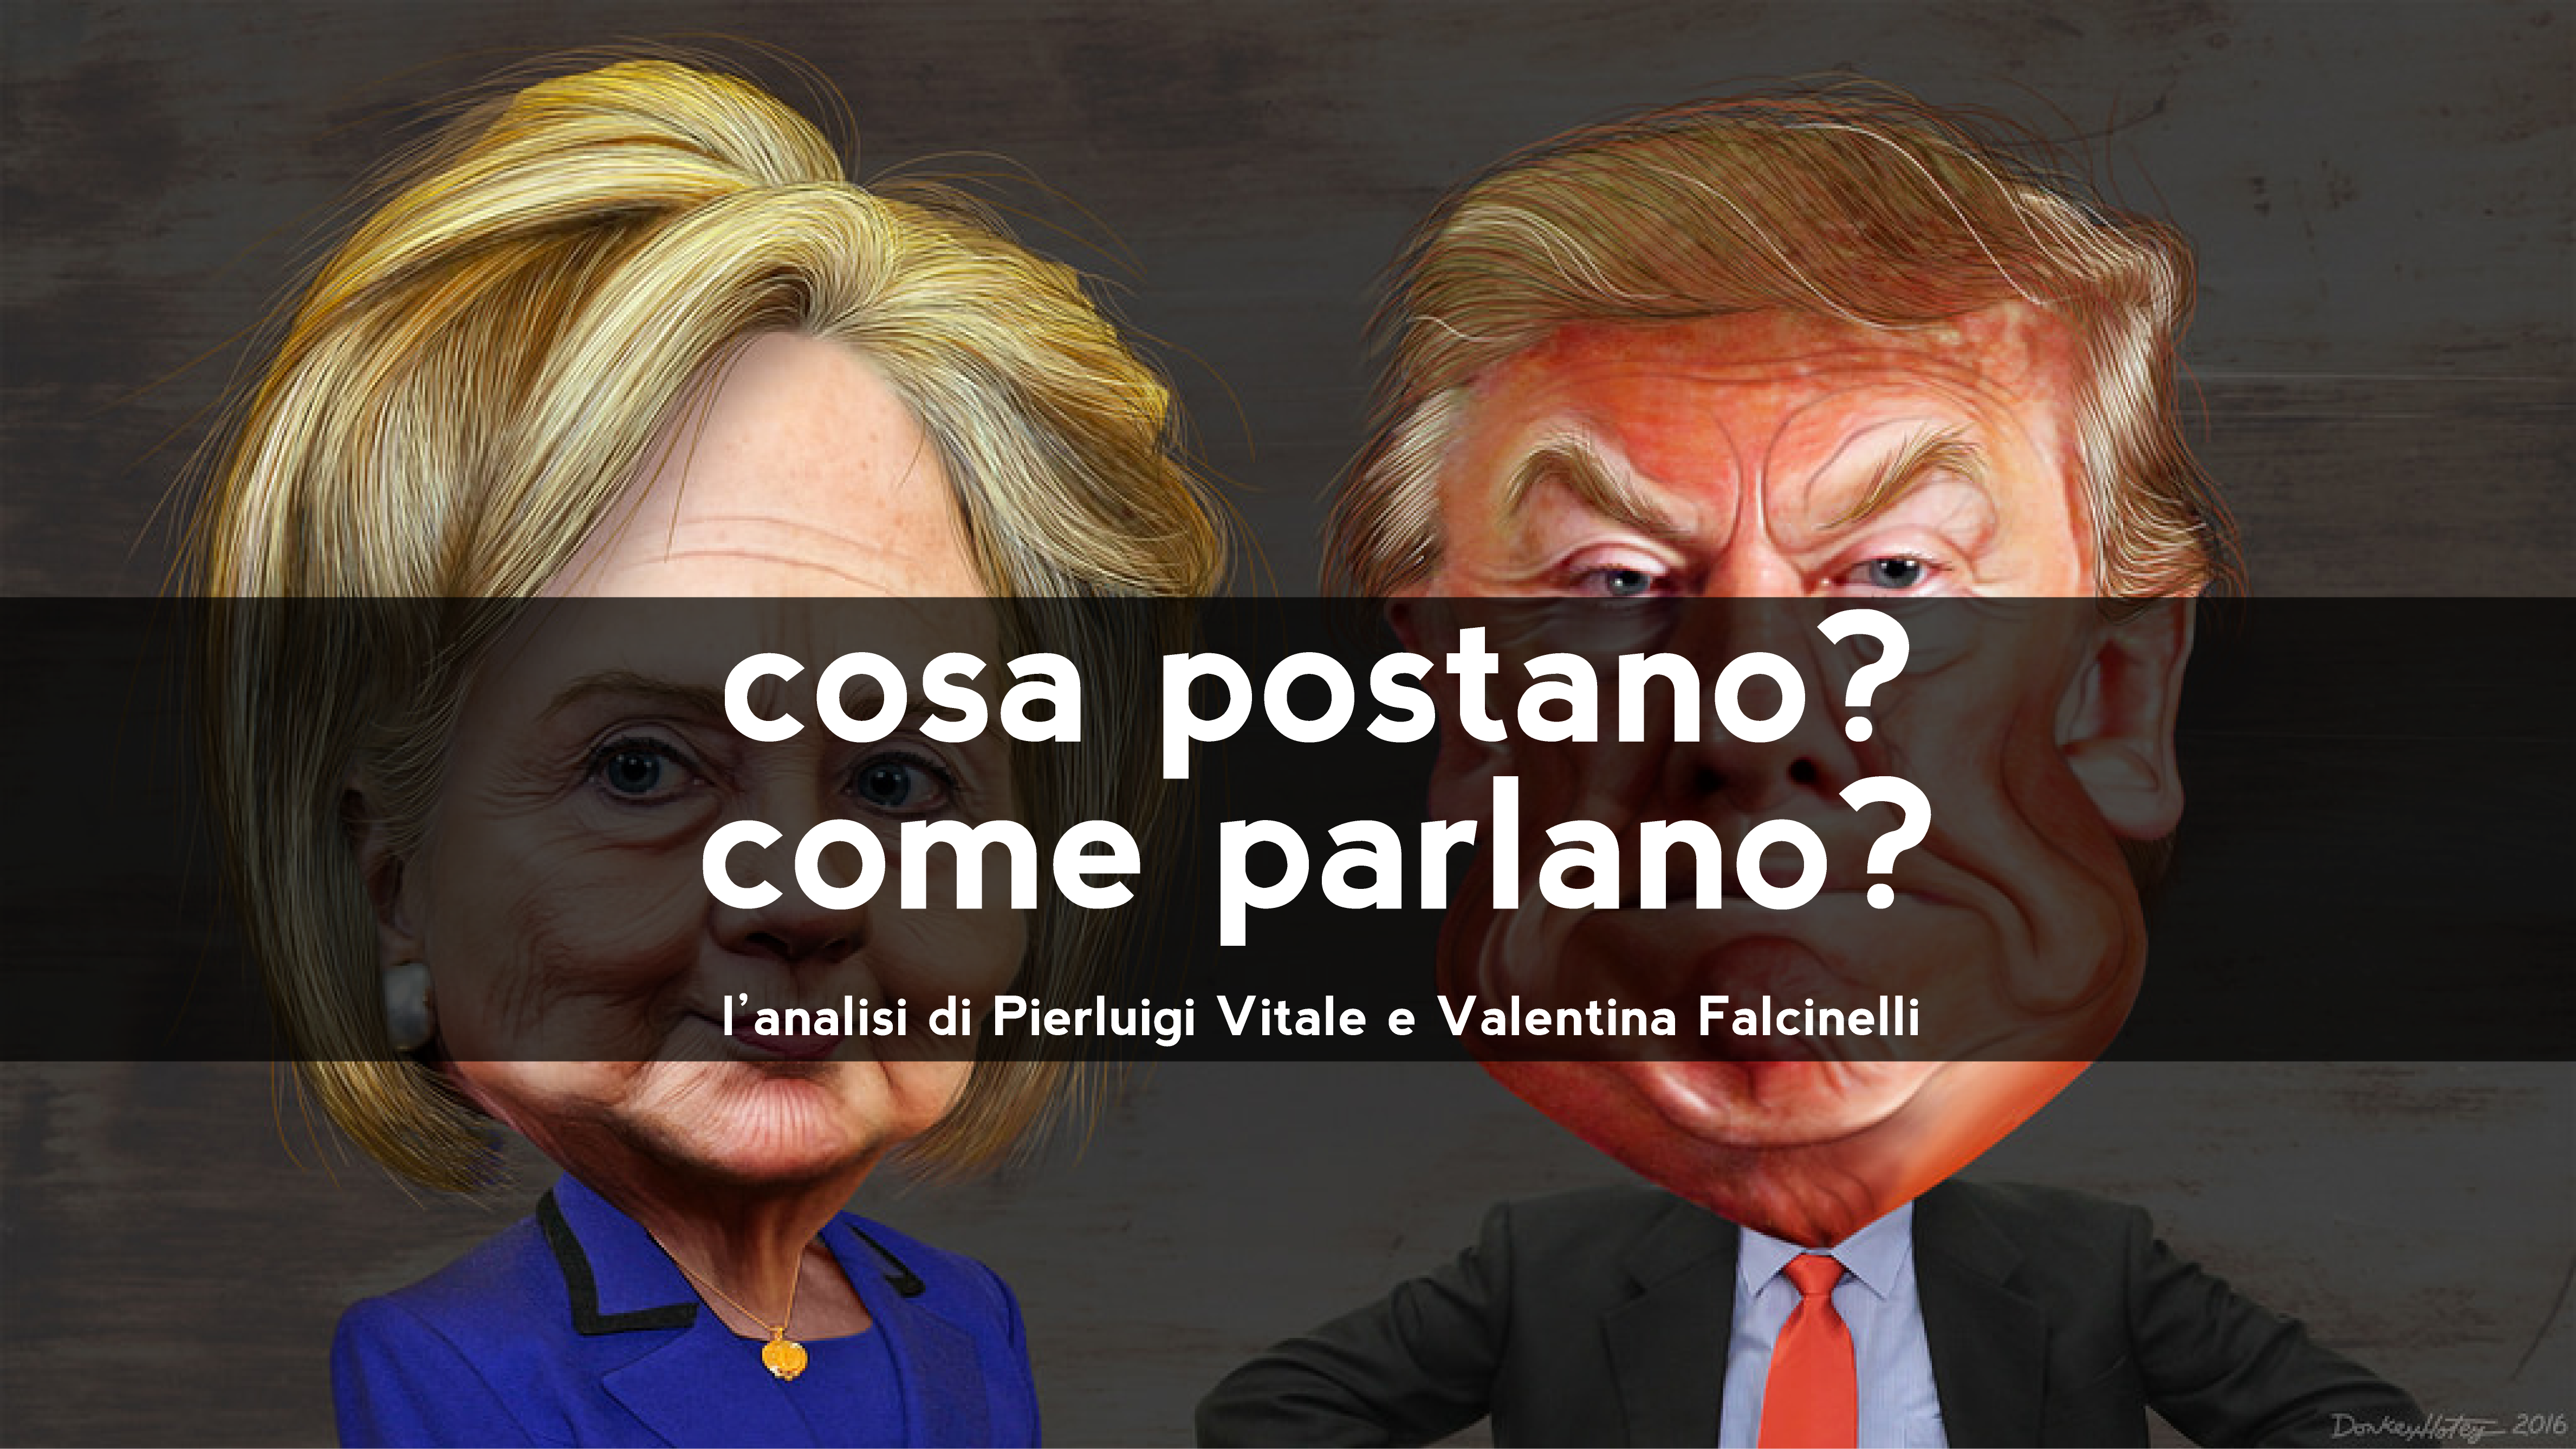 donald trump and hillary clinton facebook strategy